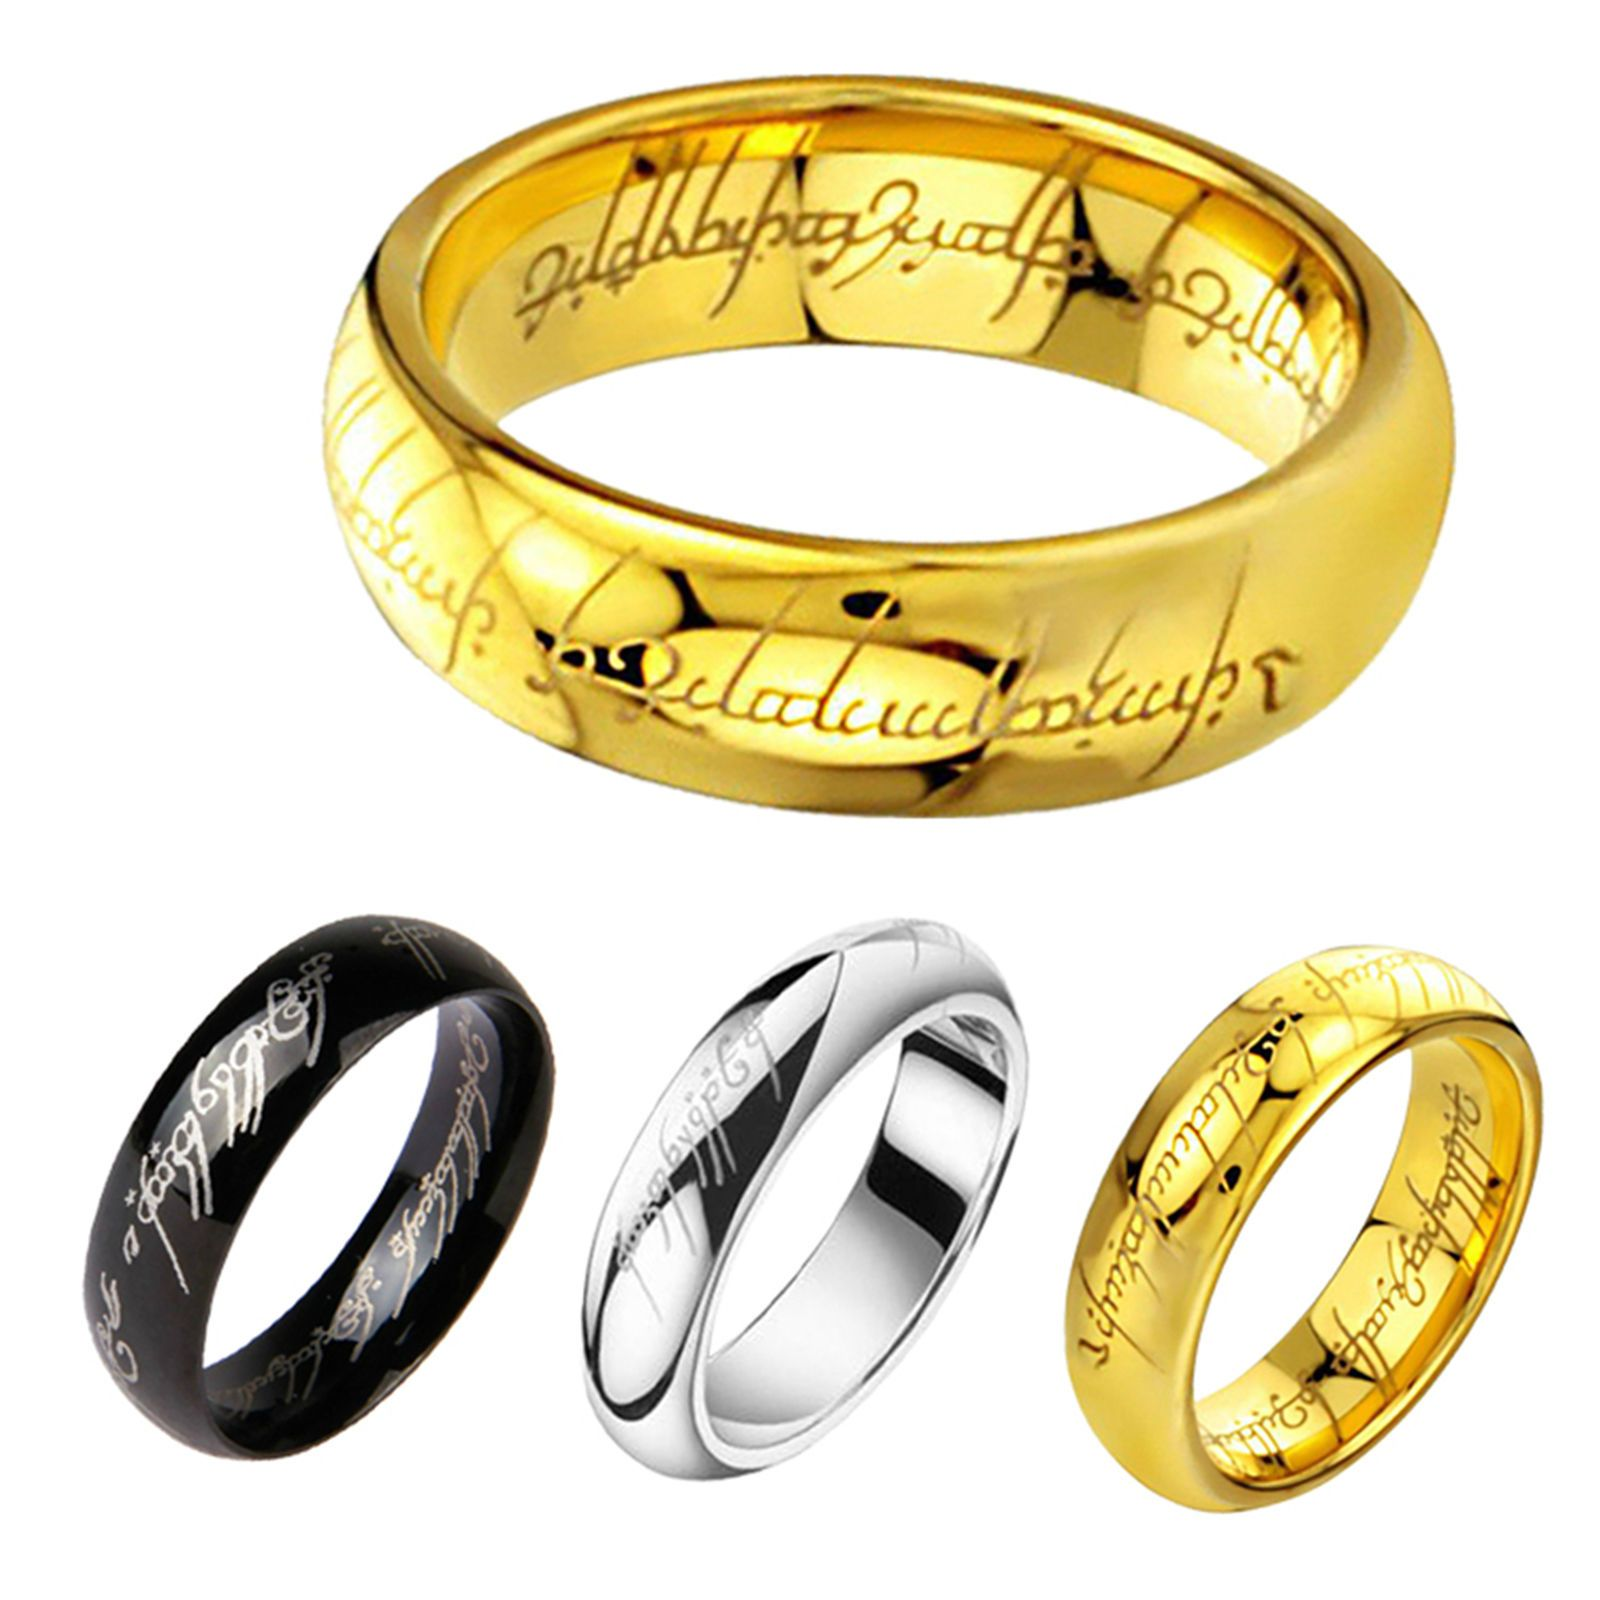 Lord Of The Rings The One Ring Lotr Stainless Steel Fashion Men S